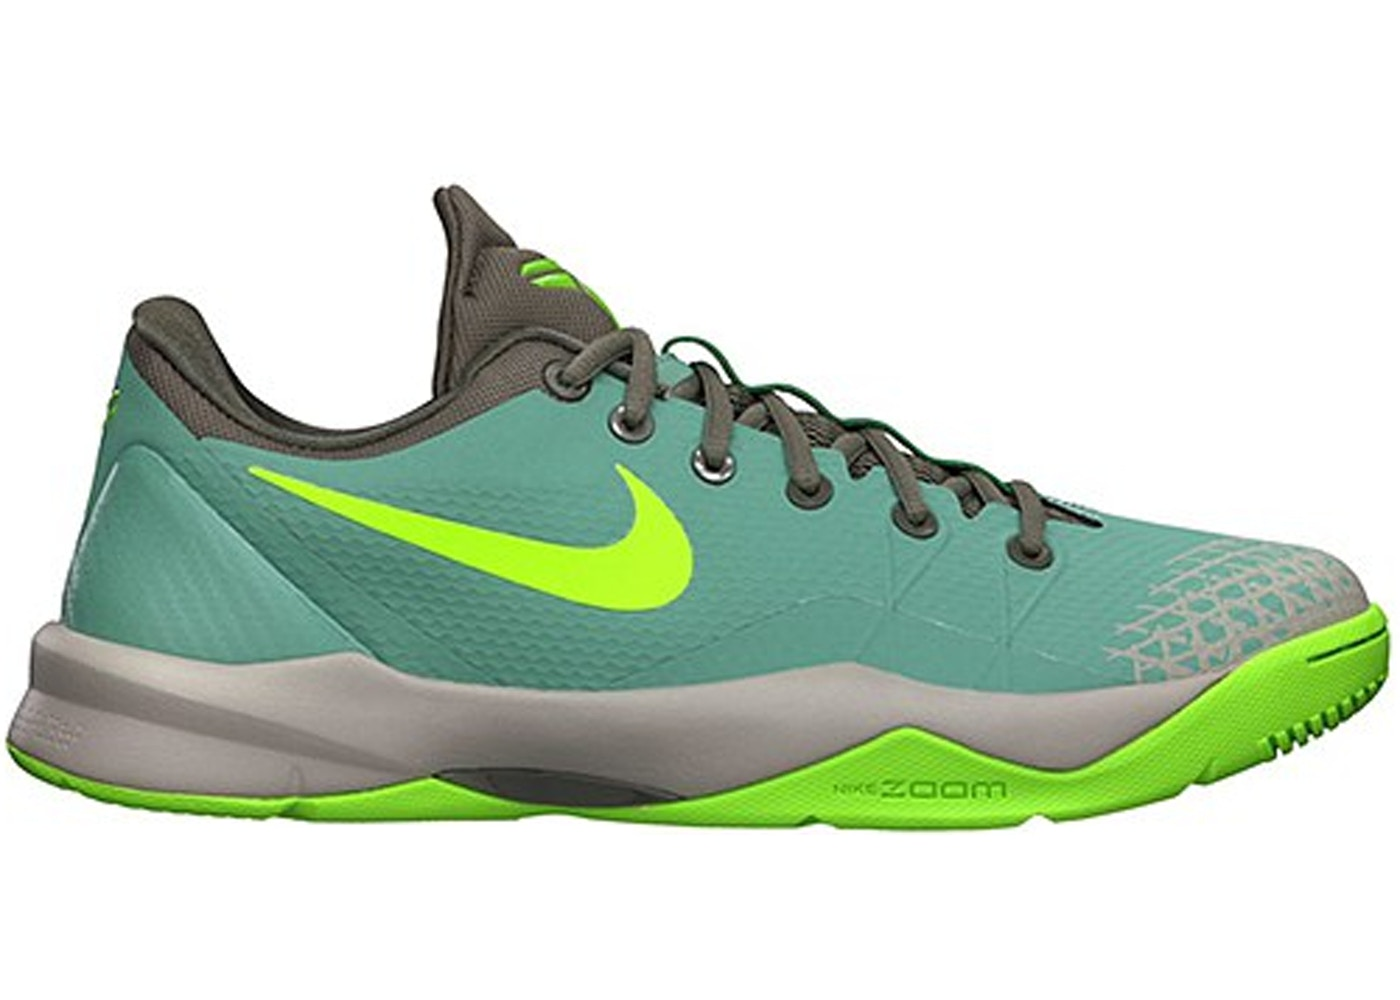 competitive price 7d2b1 1ca51 Zoom Kobe Venomenon 4 Diffused Jade - 635578-300